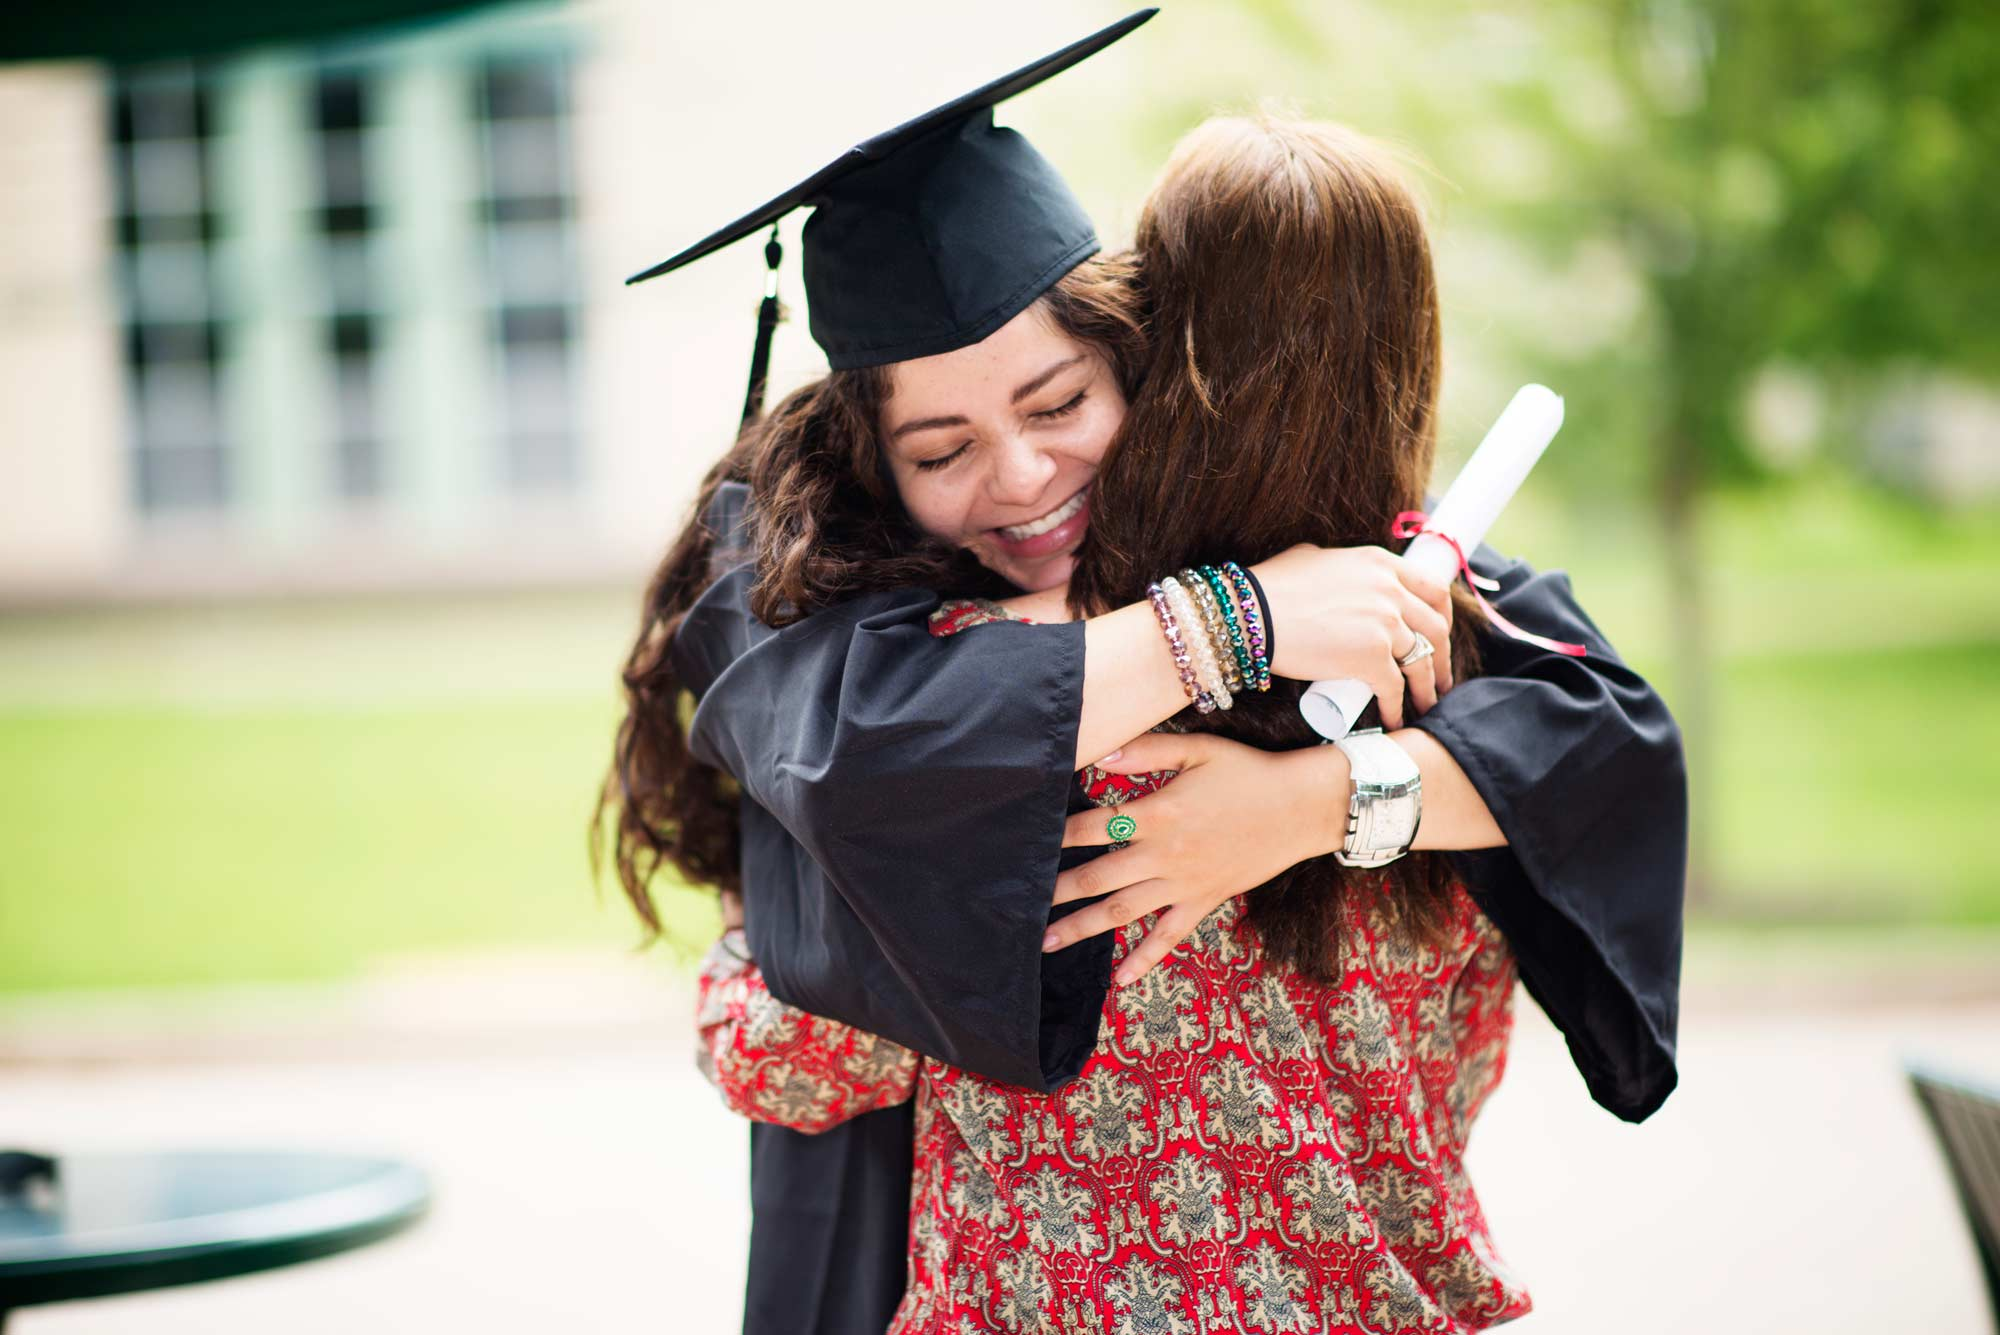 Graduate hugging woman